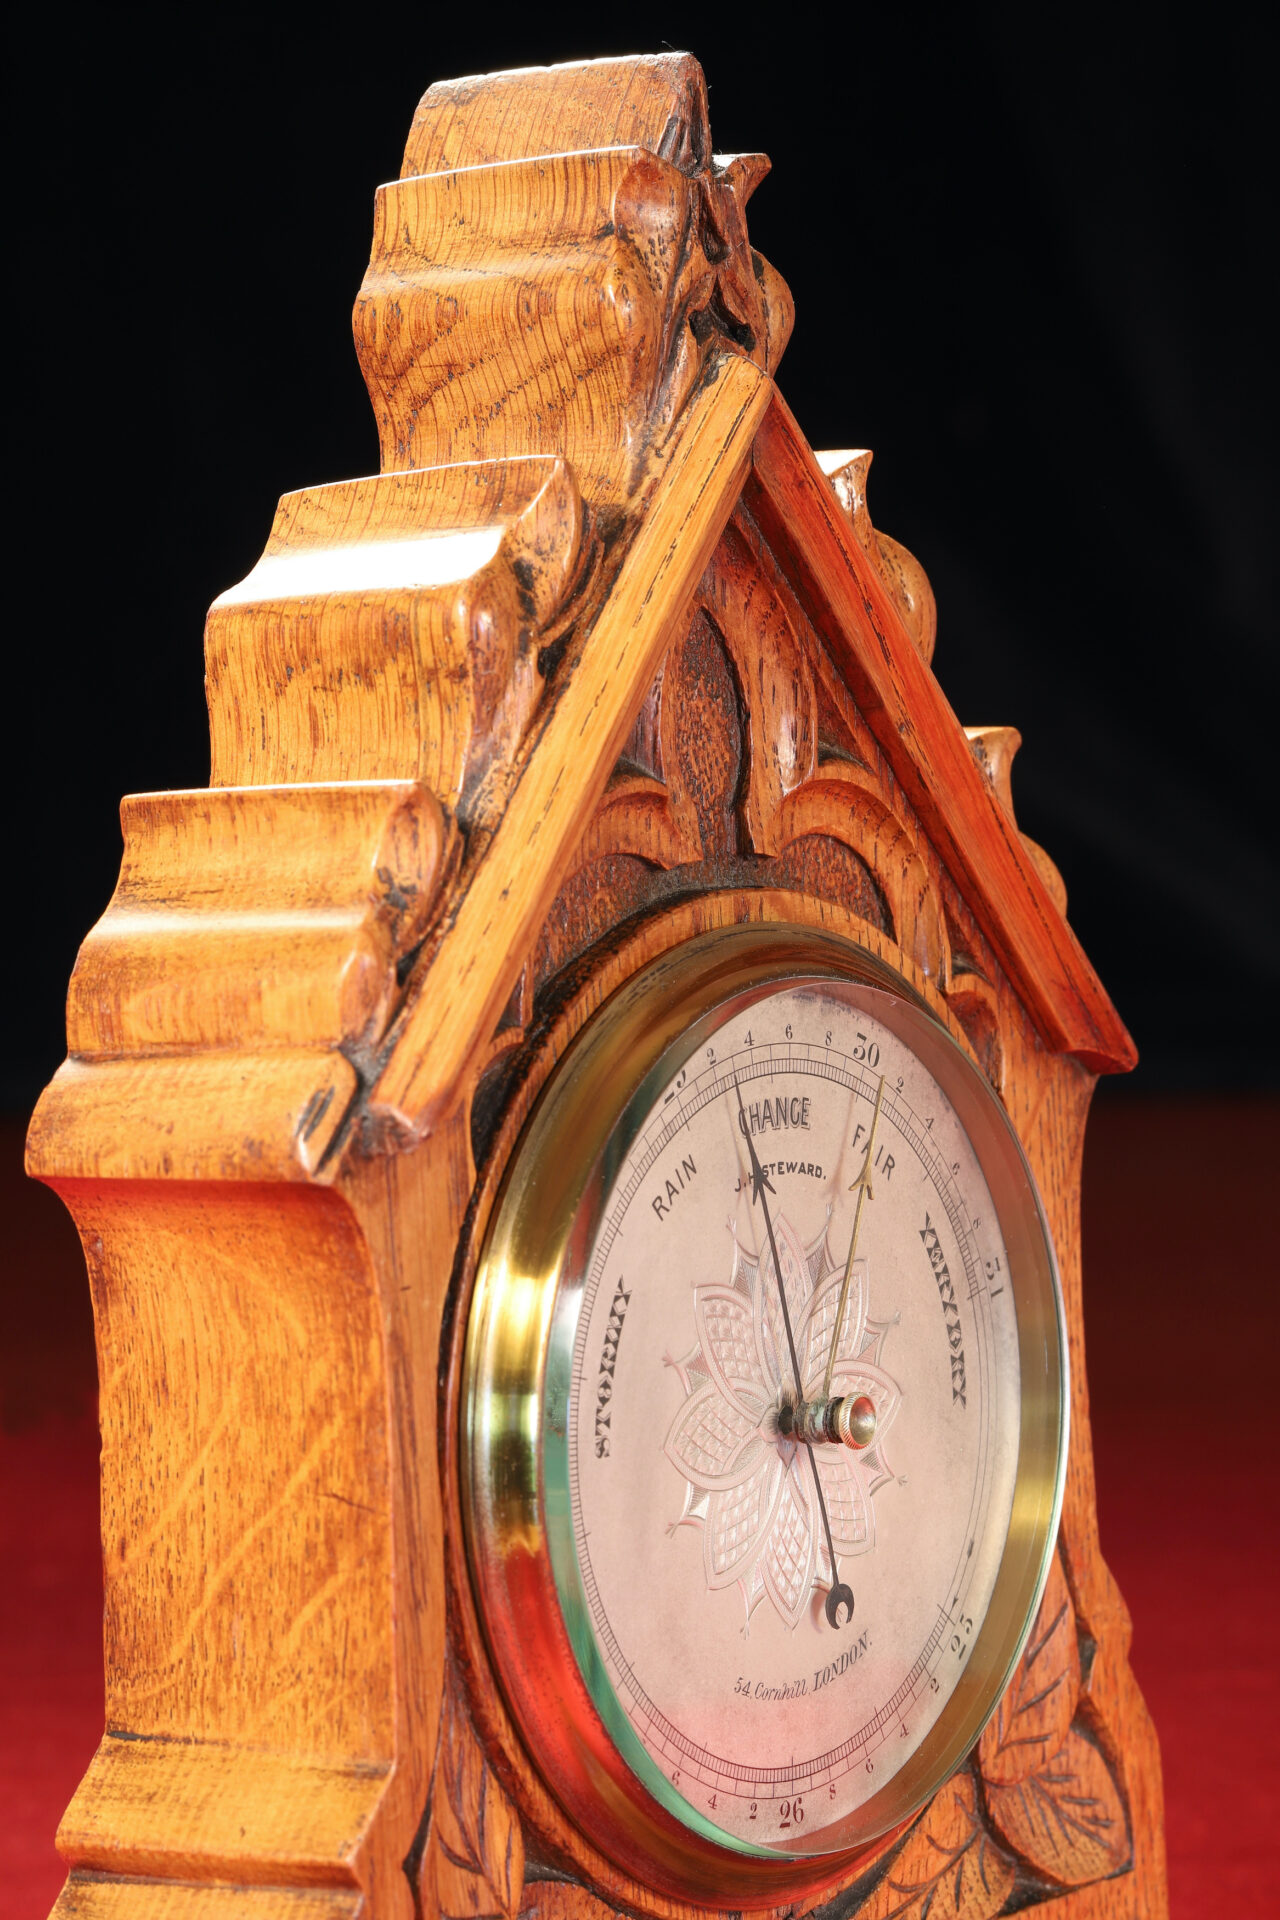 Close up of JH Steward Gothic Mantle Barometer c1880 taken from lefthand side